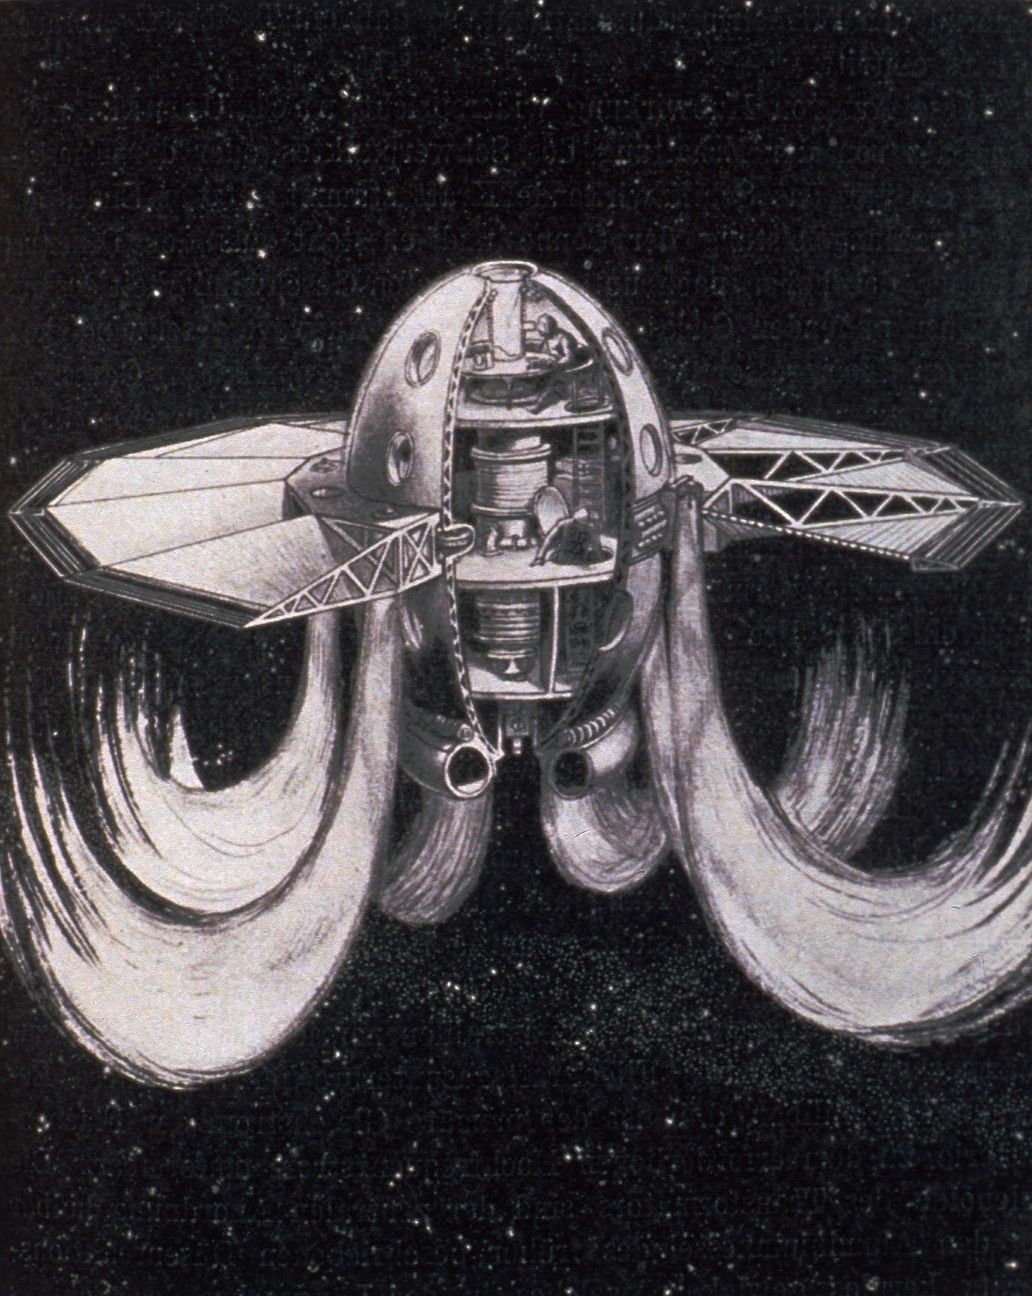 Willy Ley. The Feasibility of Interplanetary Travel. 1928.